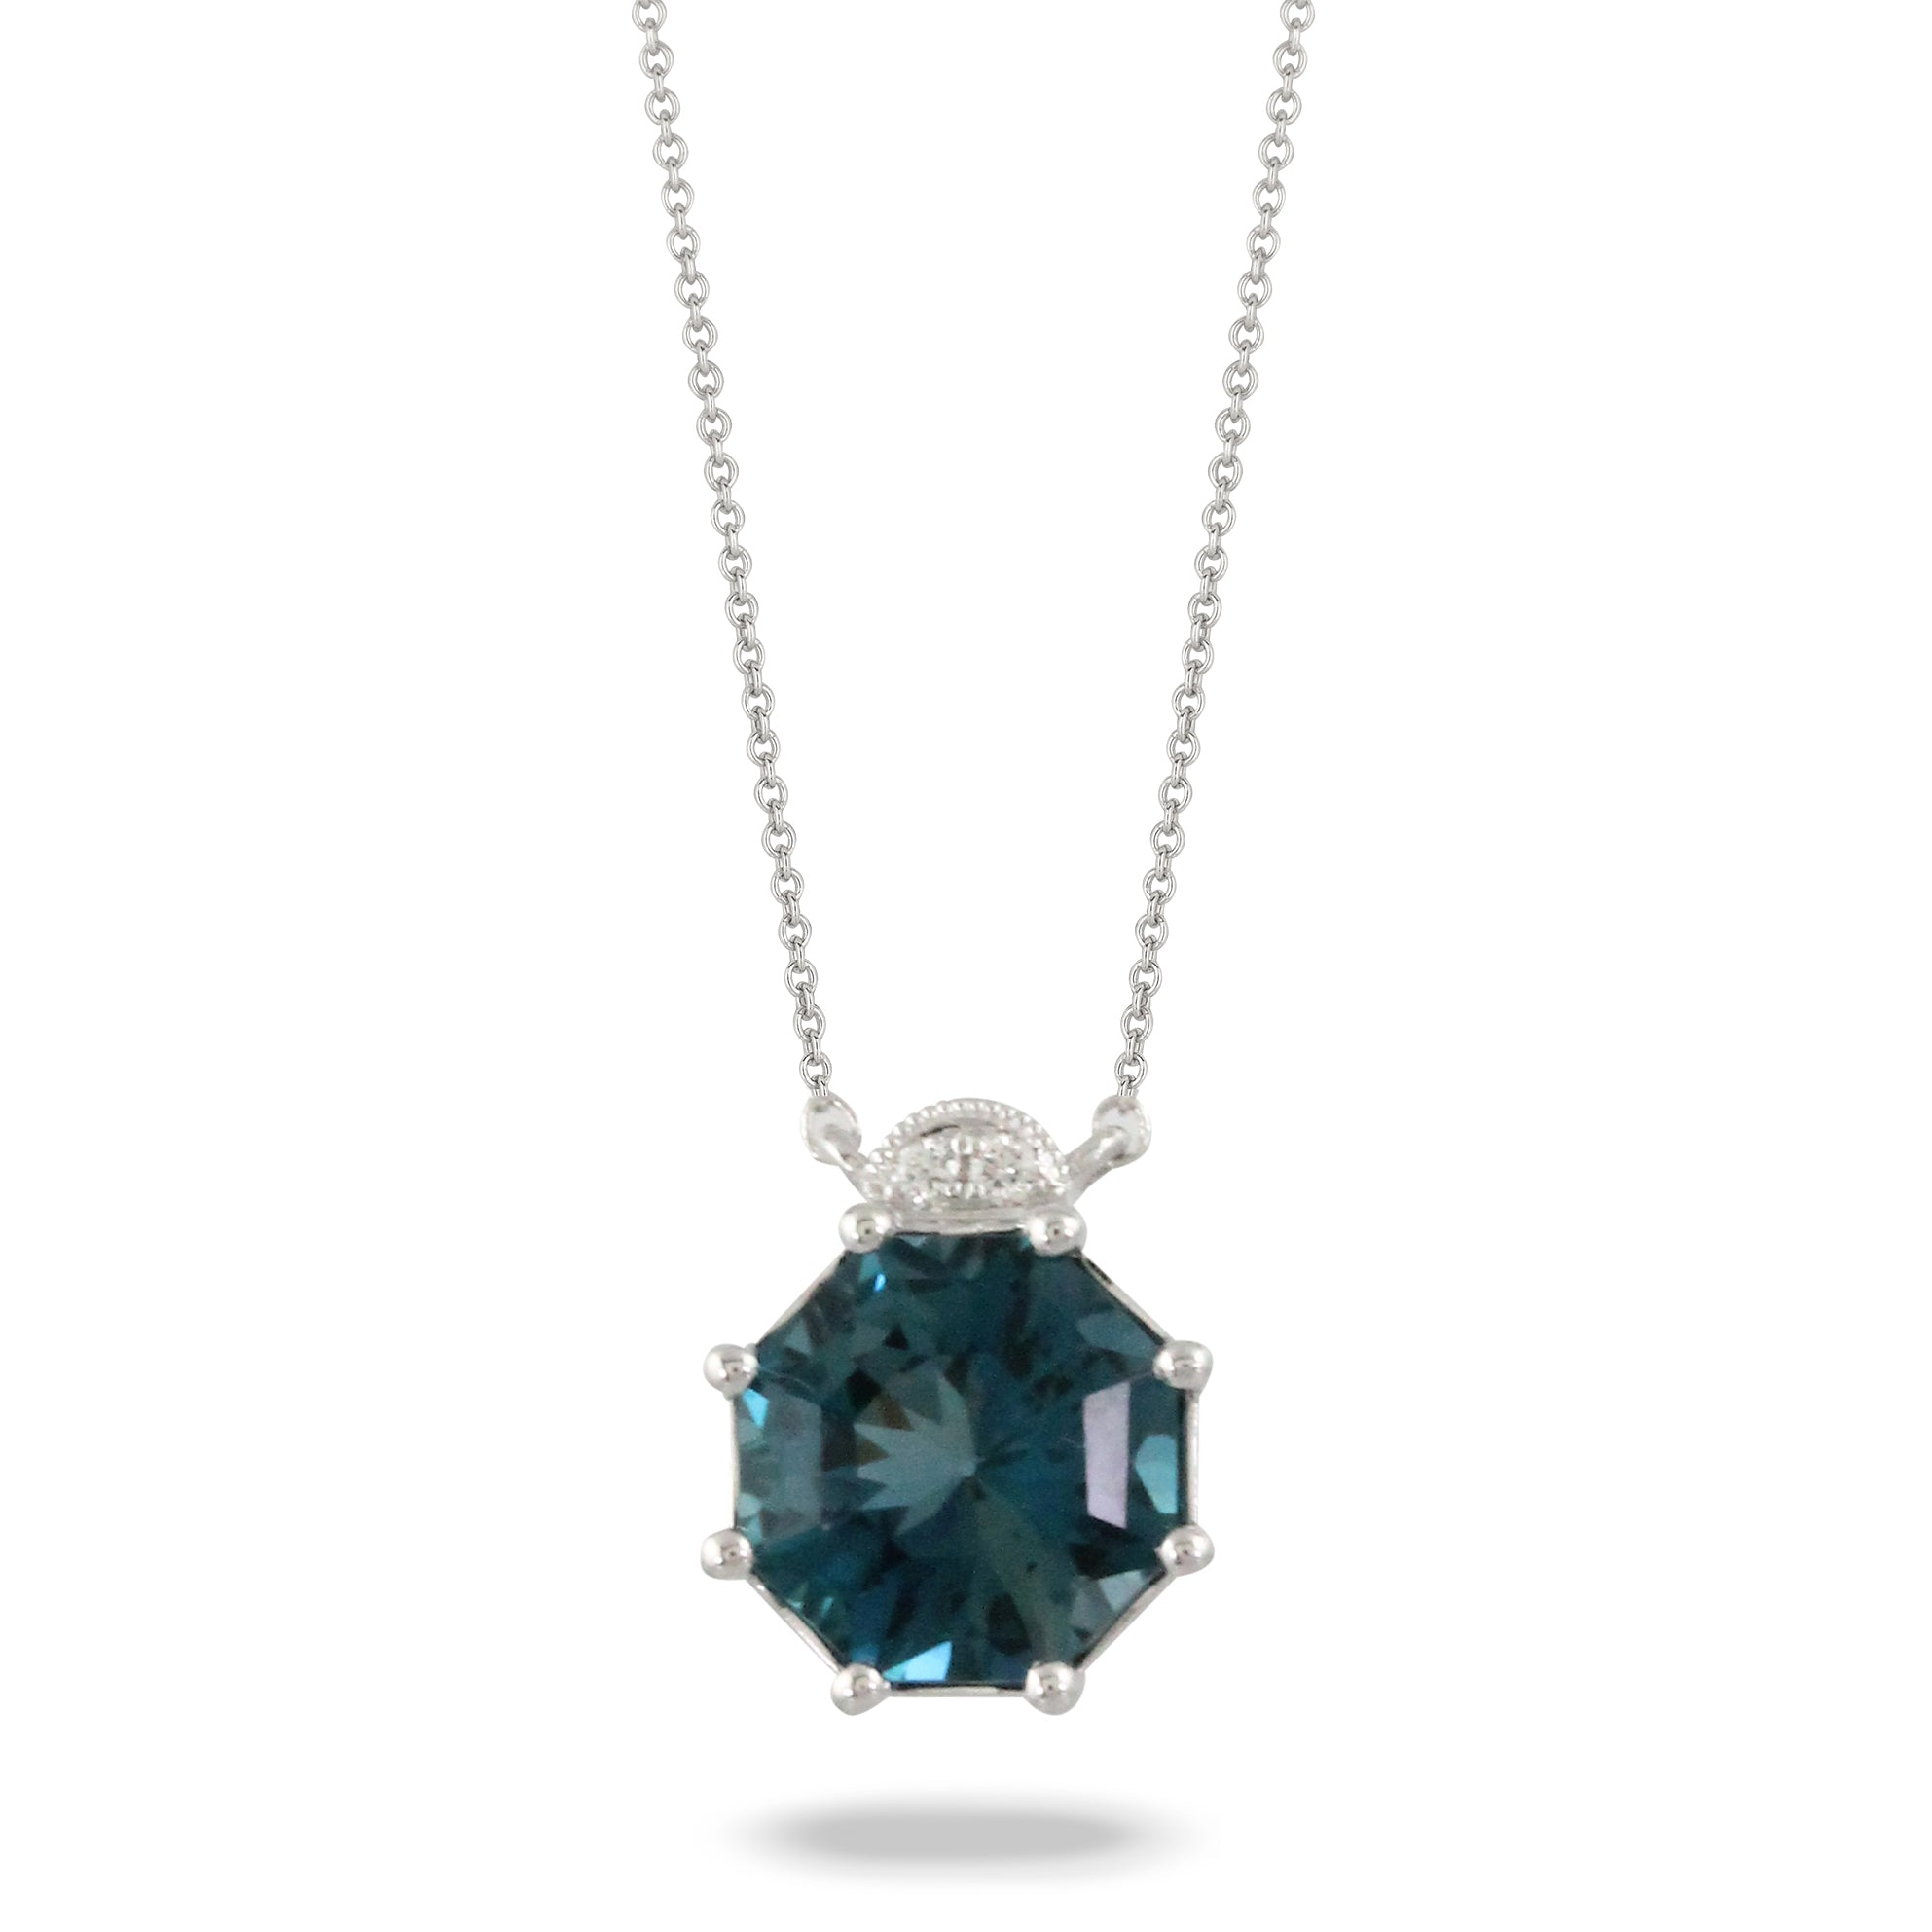 London Blue Topaz and Diamond Octagonal Necklace by Doves - Talisman Collection Fine Jewelers